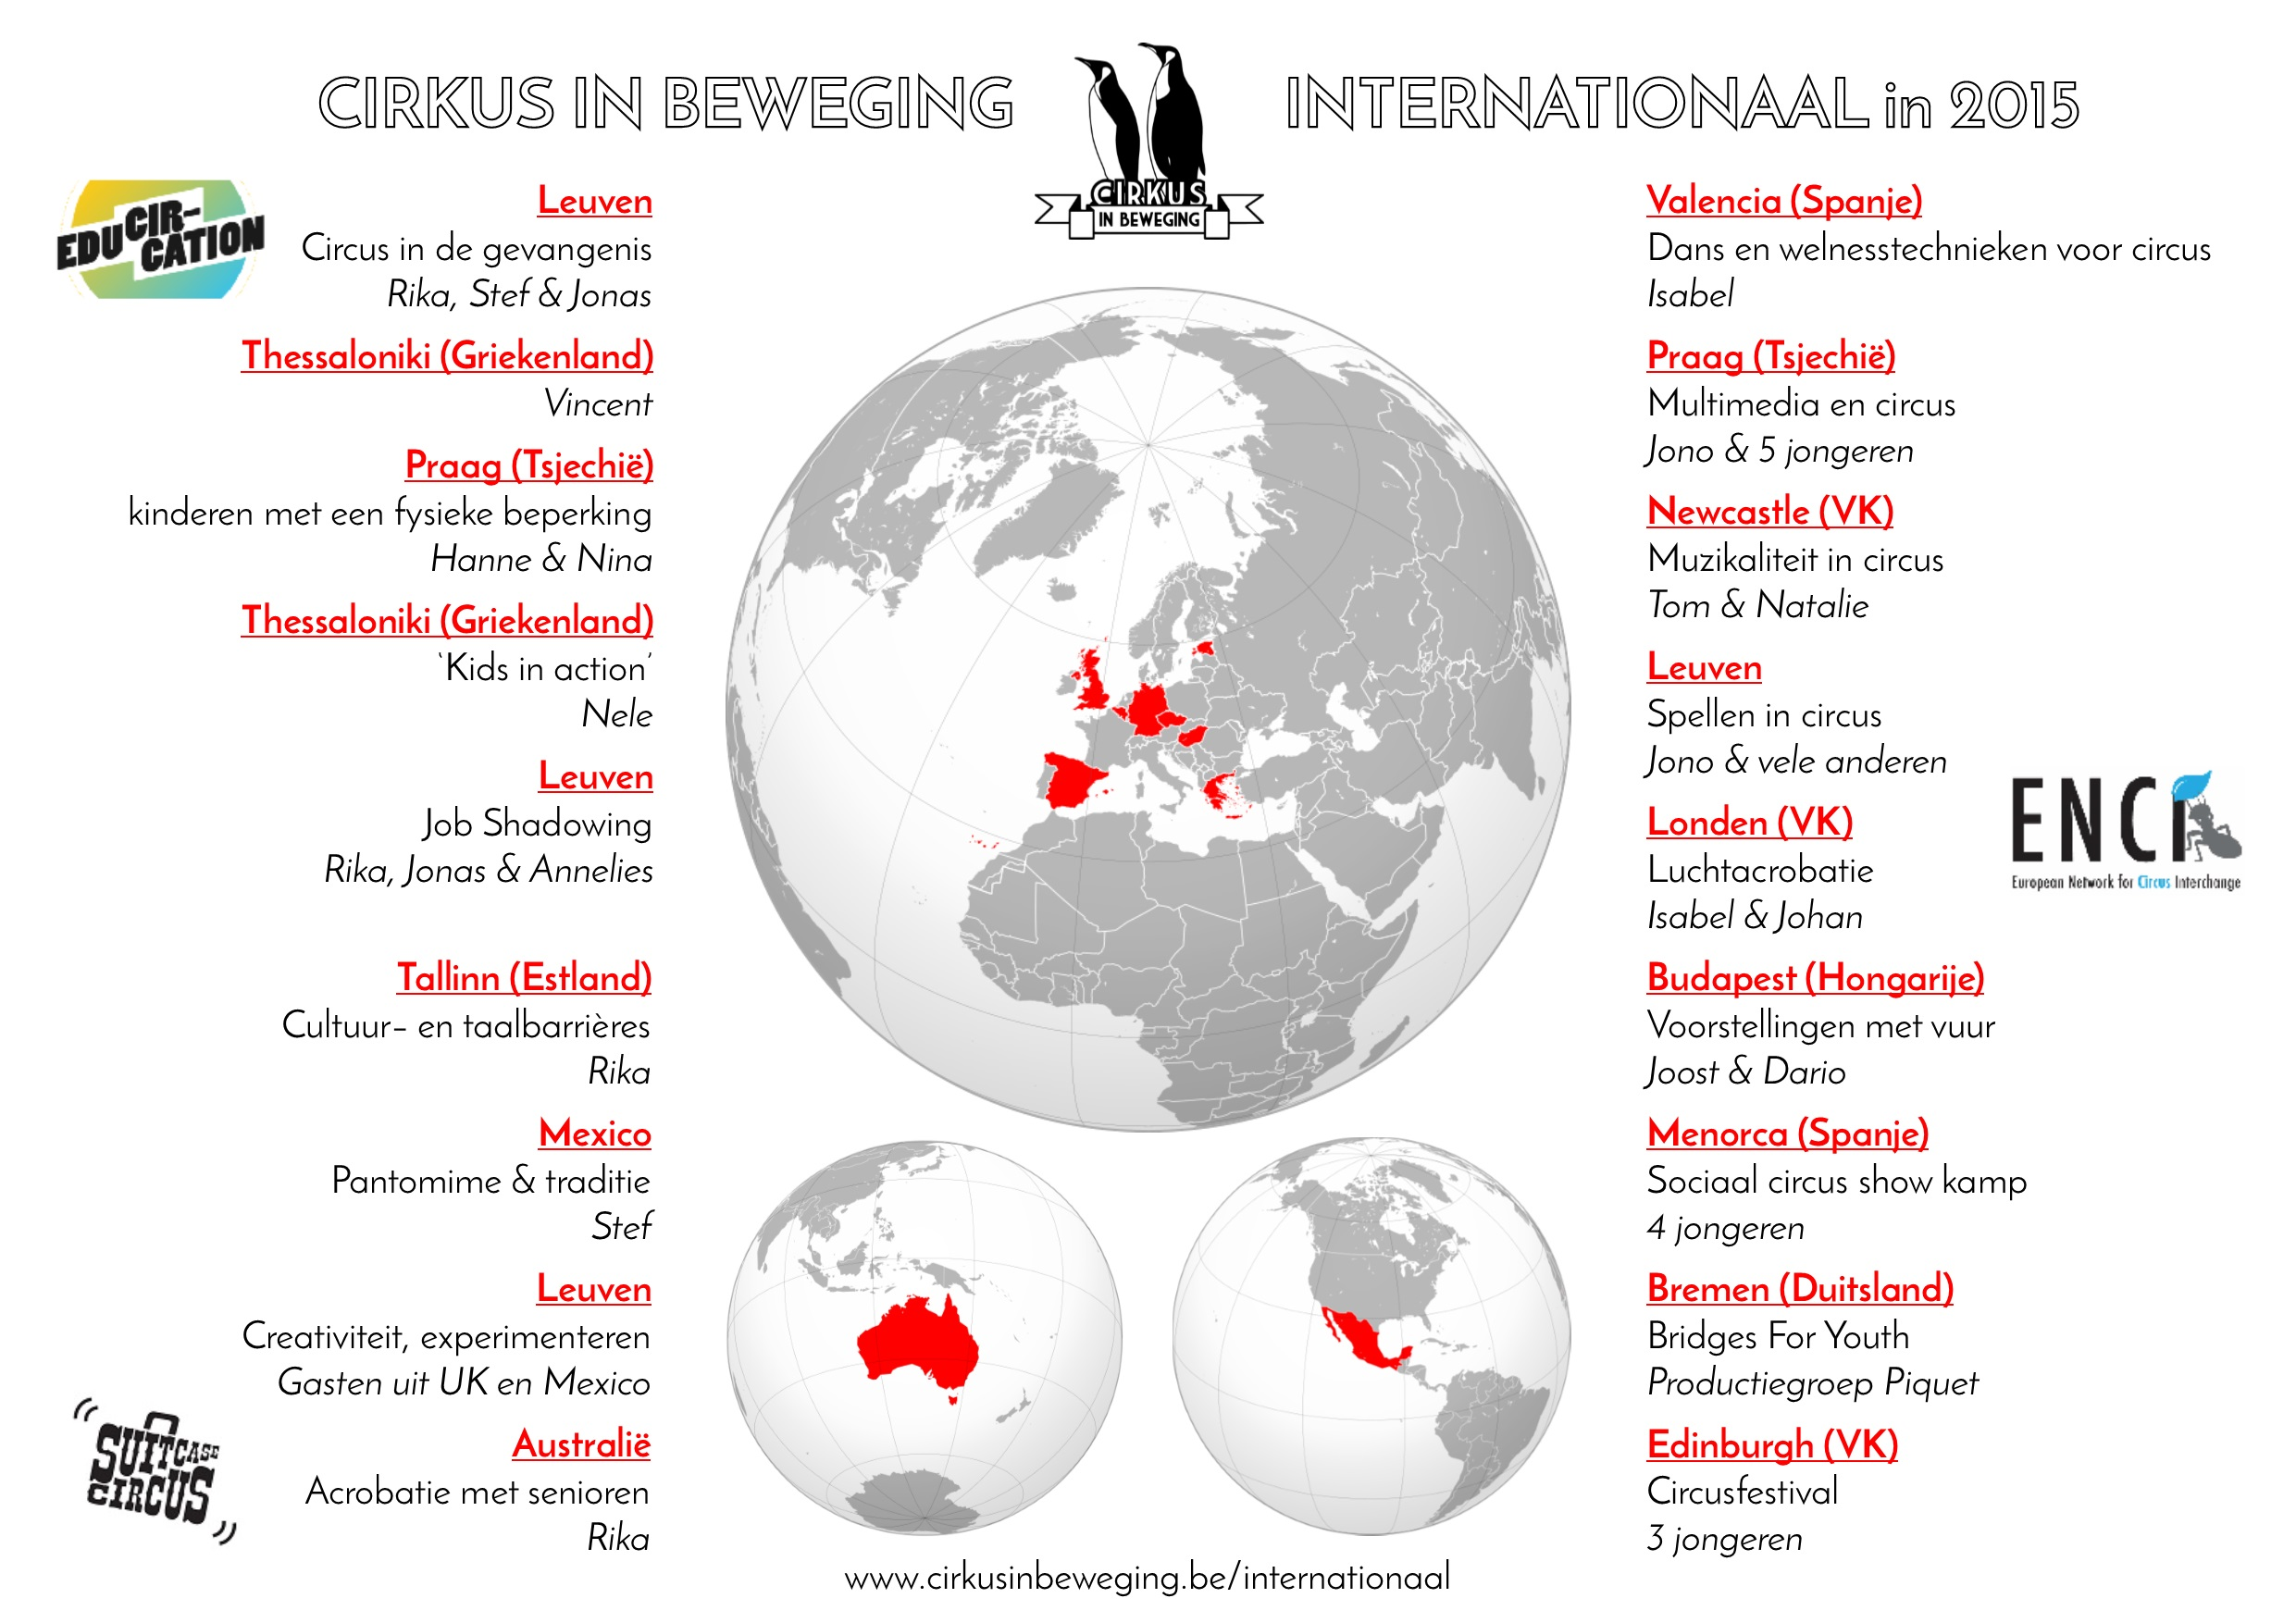 cirkus-in-beweging-internationaal-2015